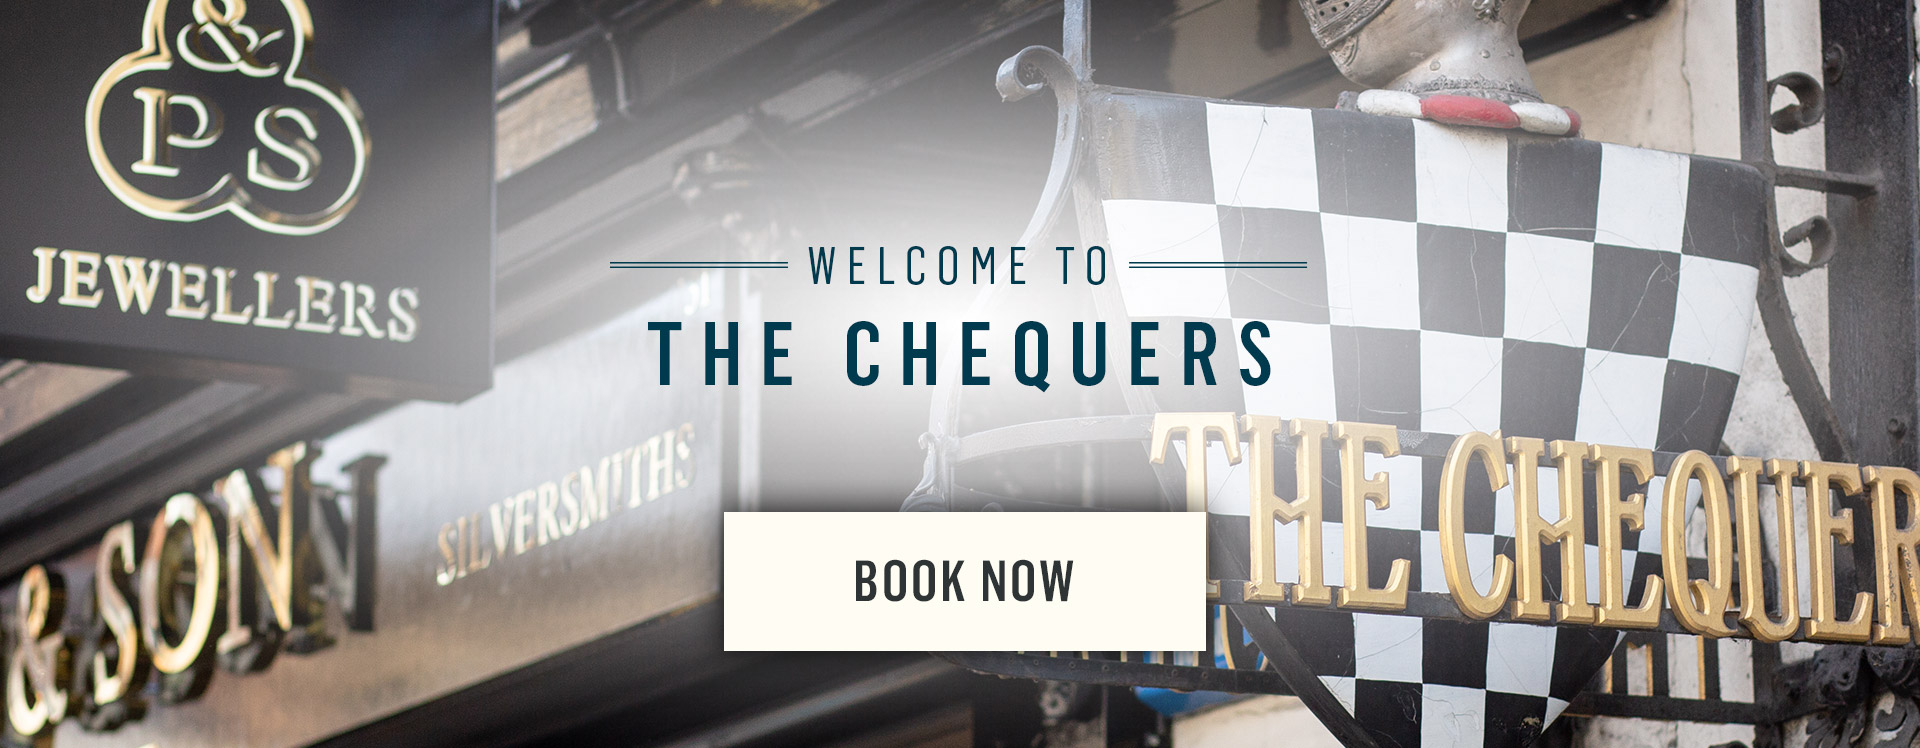 Welcome to The Chequers - Book Now